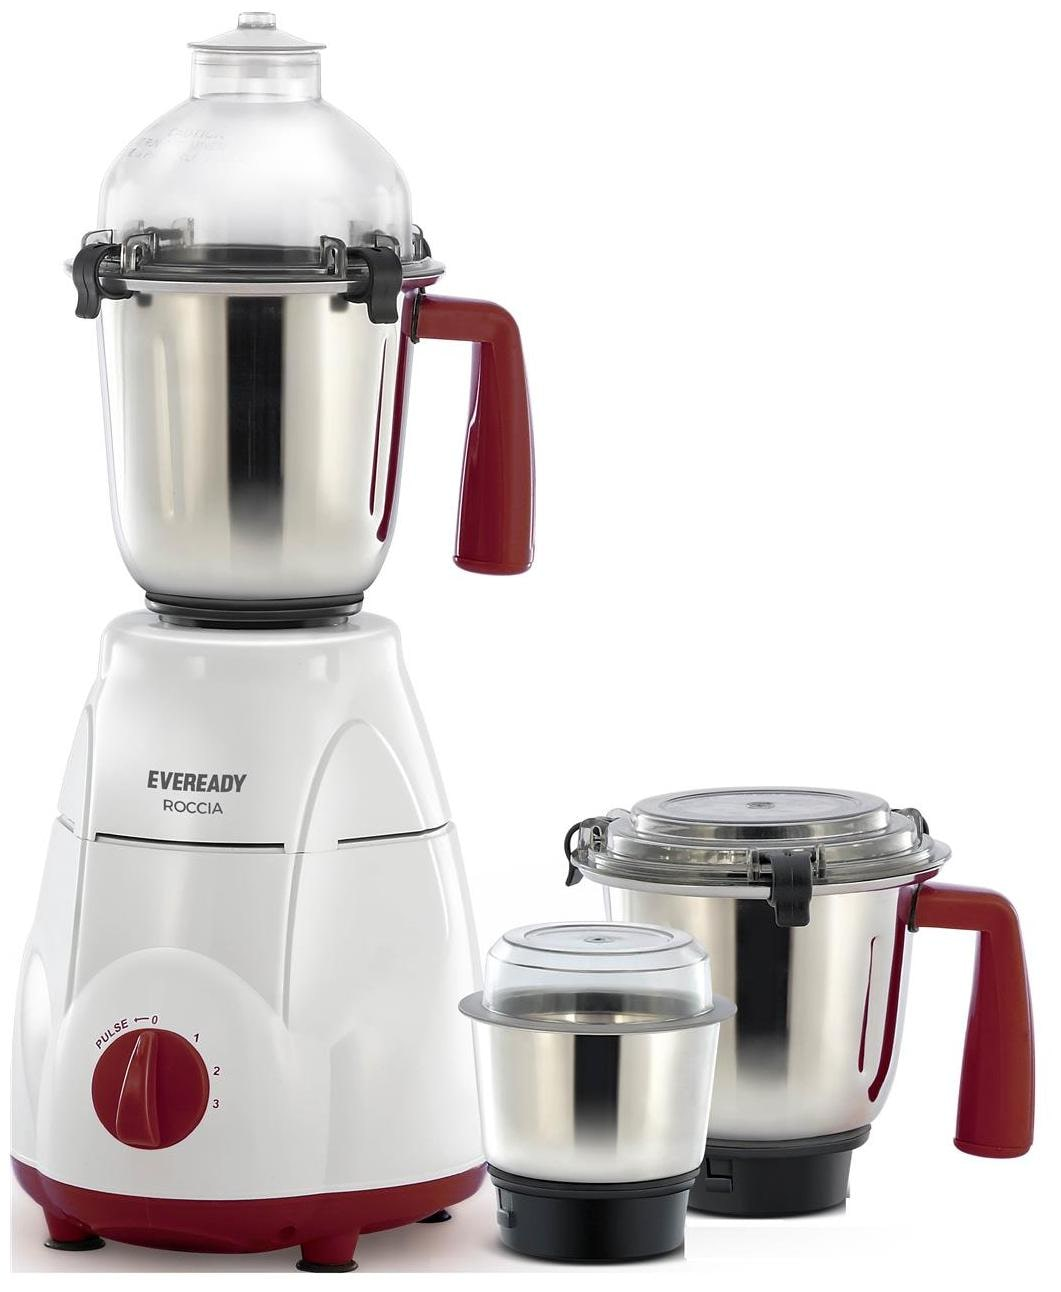 Eveready Roccia 750 W Mixer Grinder (White)